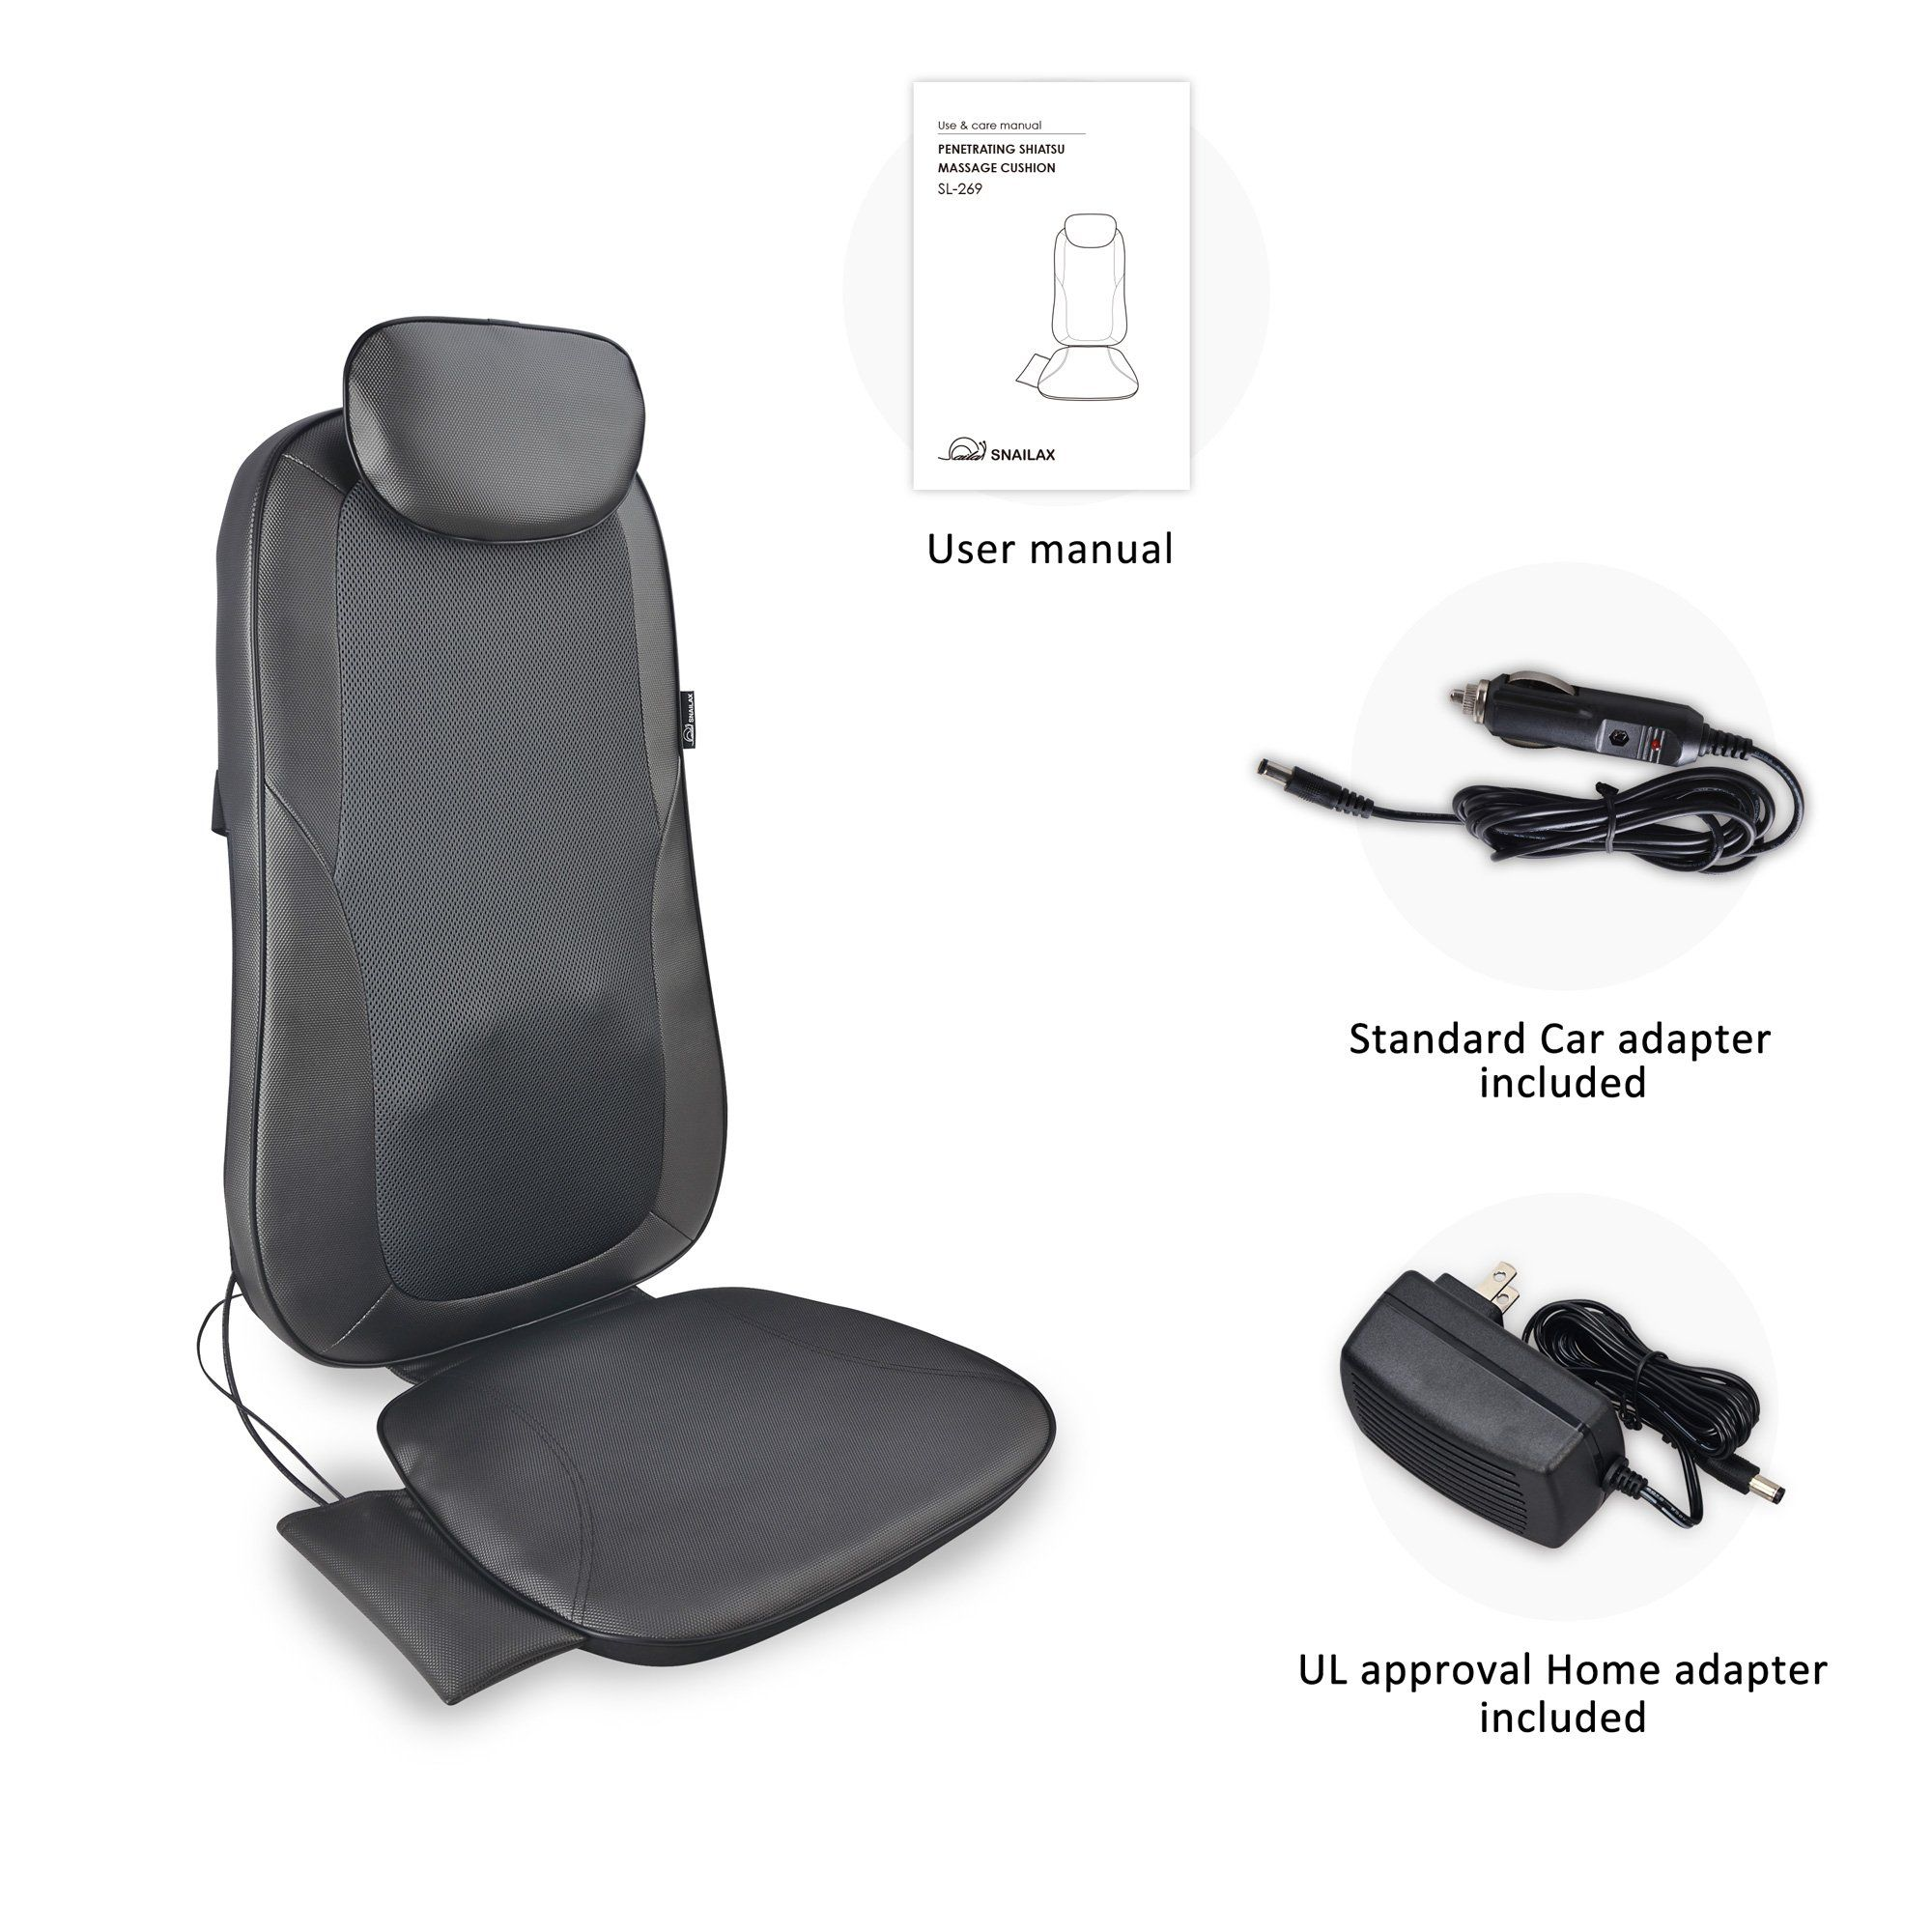 Shiatsu Back Massage seat Cushion with Heat 2D or 3D Finger Pressure Shiatsu Full Back Massager Massage Chair Pad for Home Office Use * Be sure to check out ...  sc 1 st  Pinterest & Shiatsu Back Massage seat Cushion with Heat 2D or 3D Finger Pressure ...